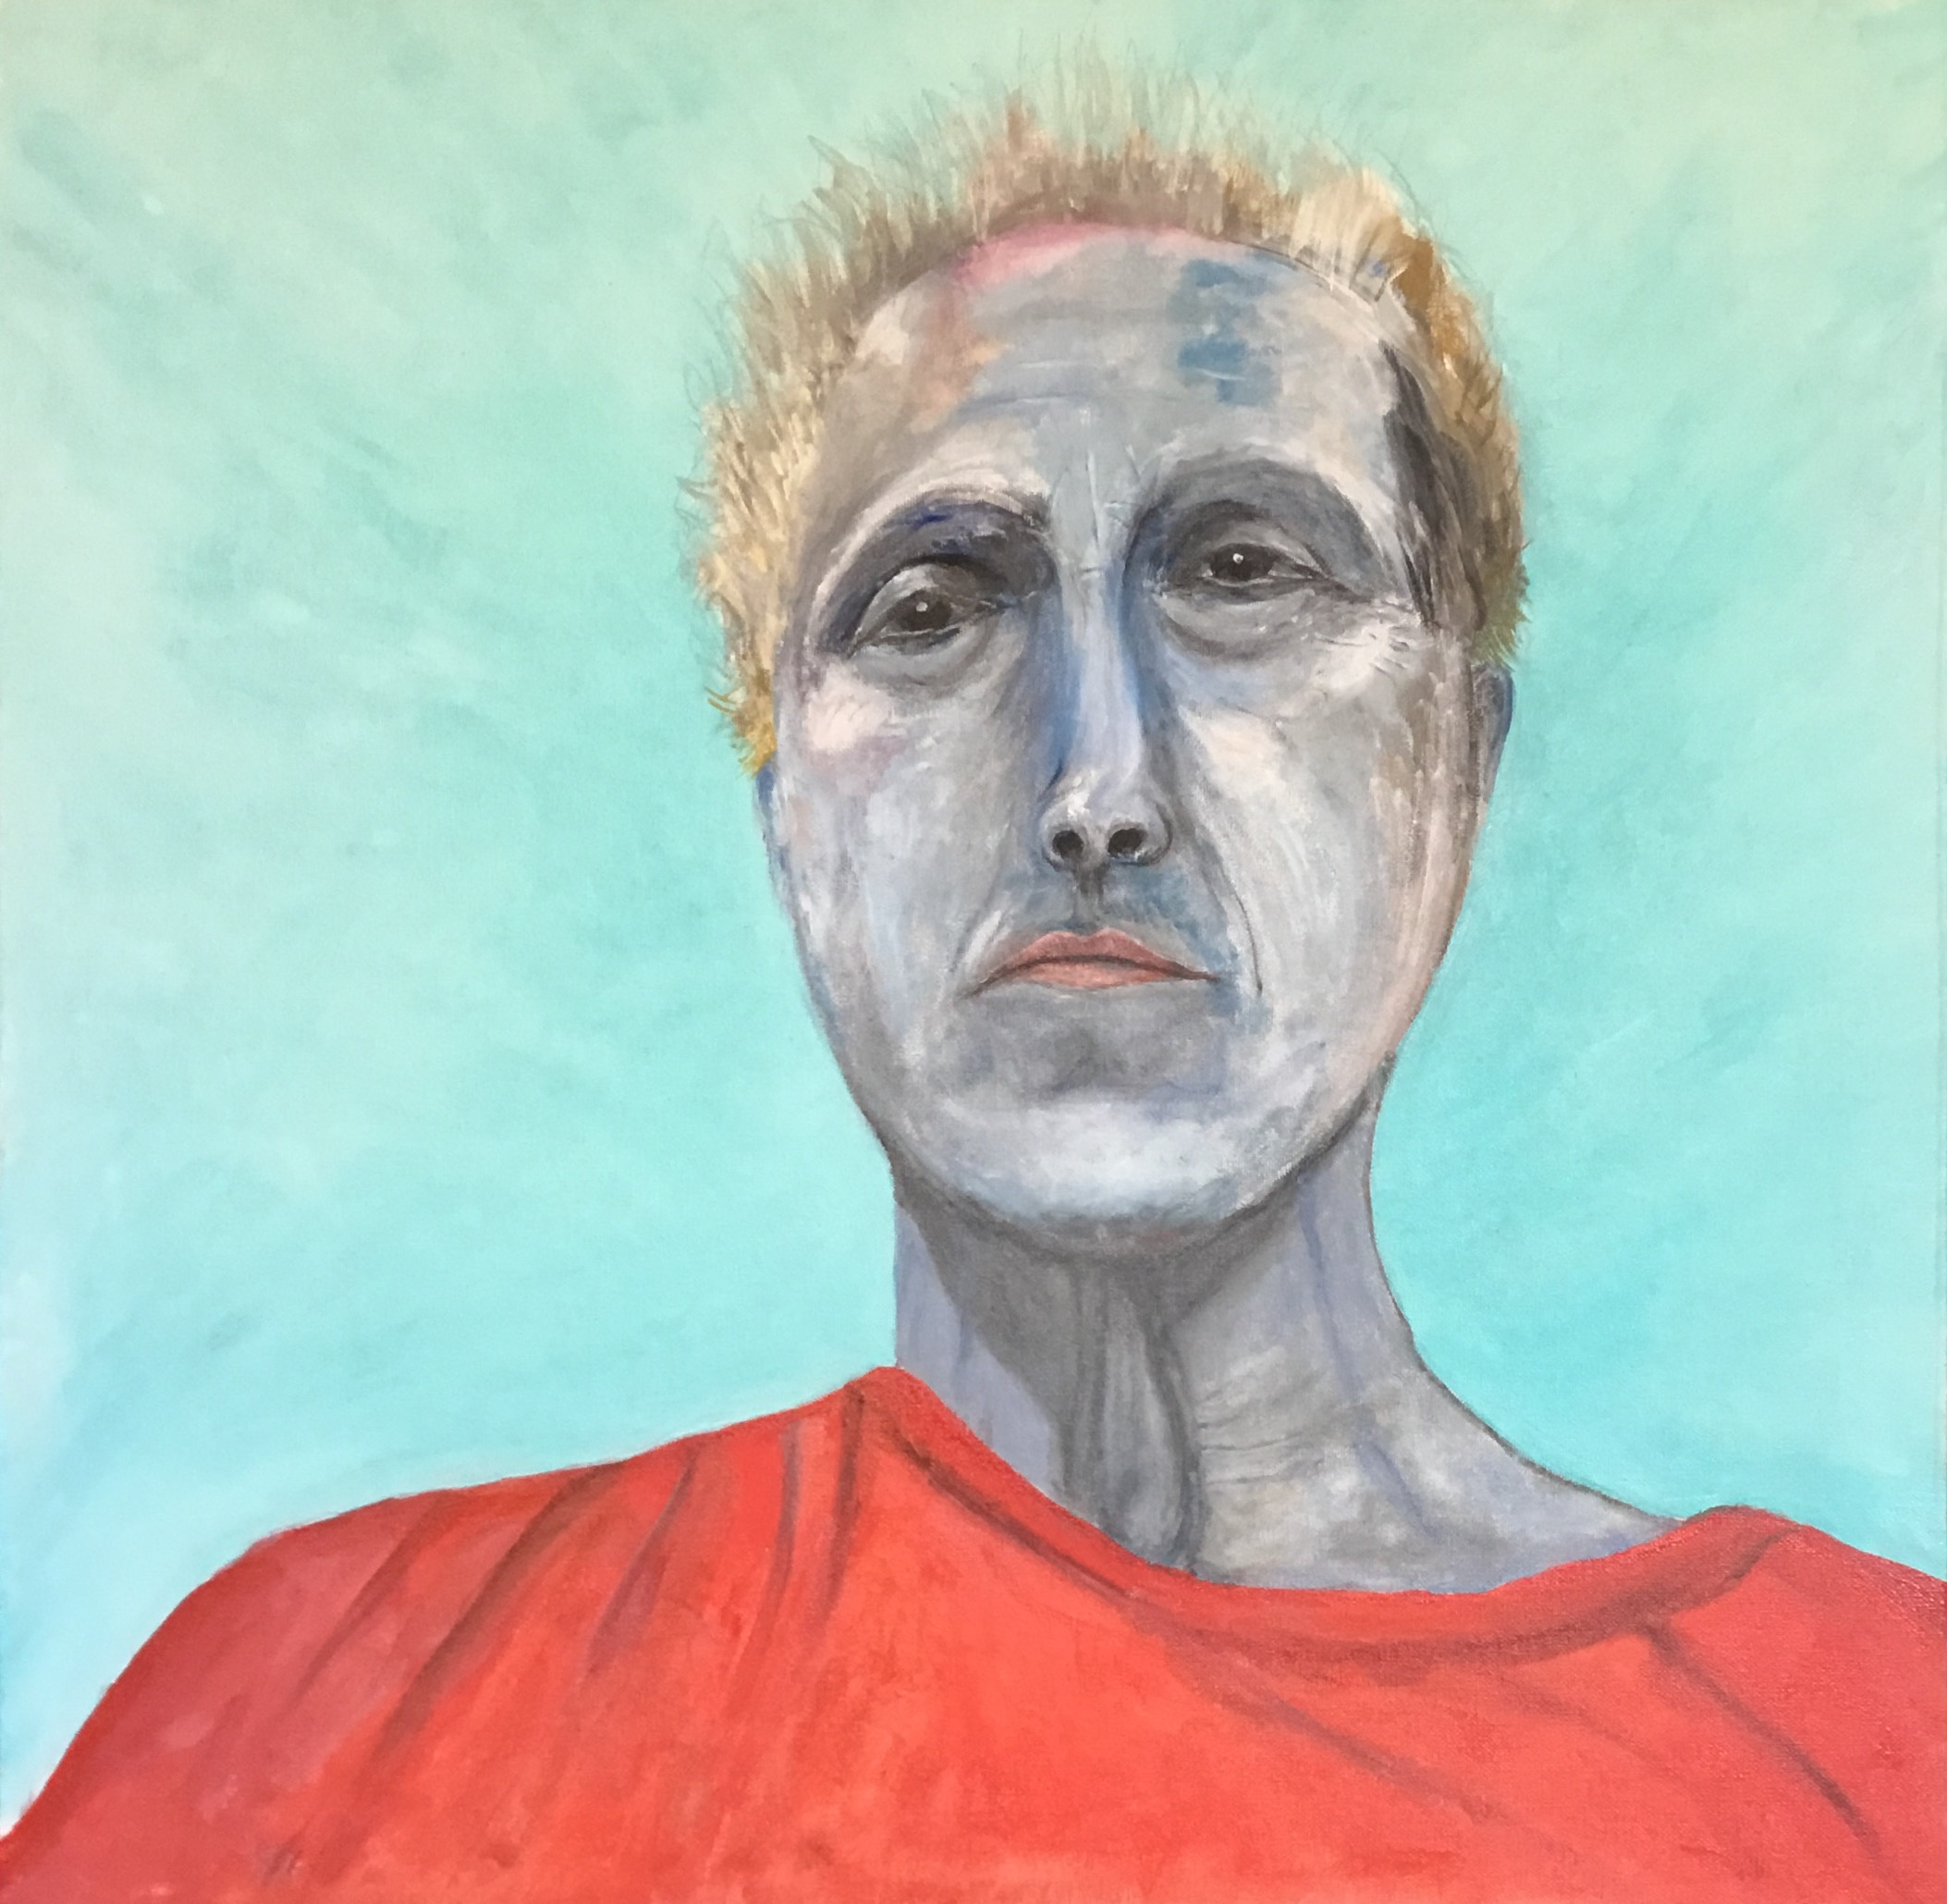 Self-portrait, oil on canvas, 60x60 cm